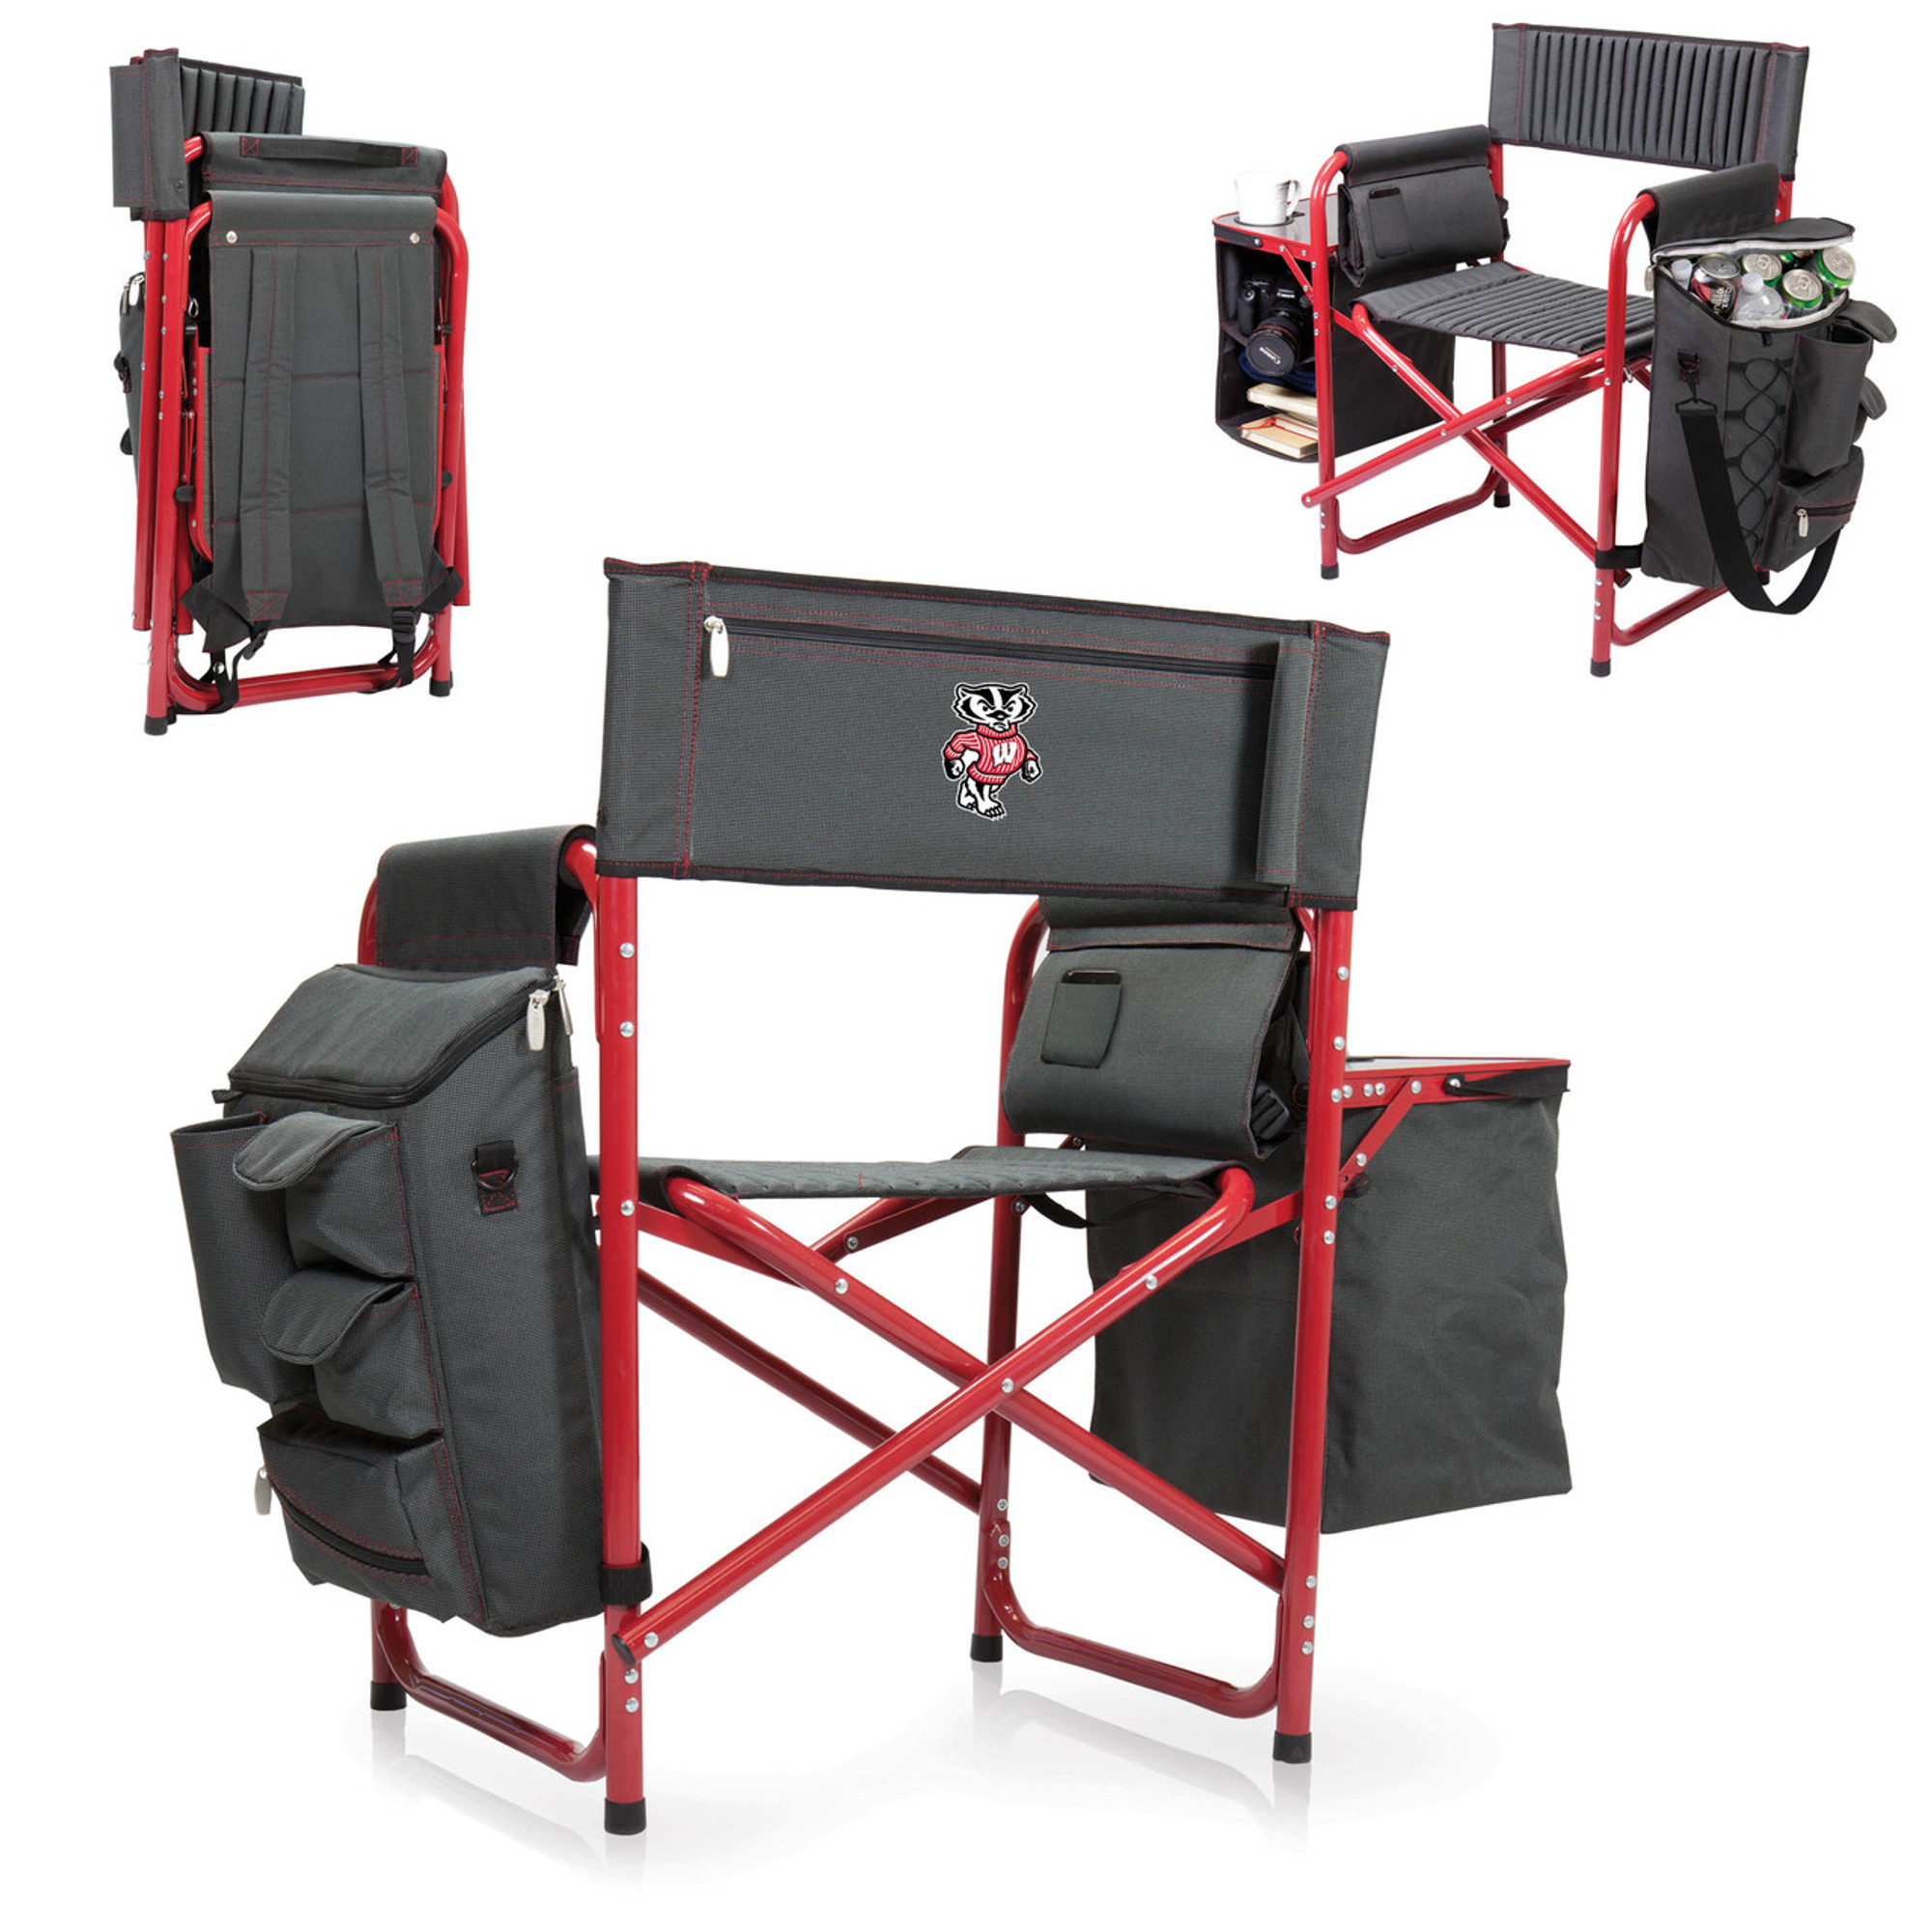 Tailgating Chairs Wisconsin Badgers Fusion Tailgating Chair